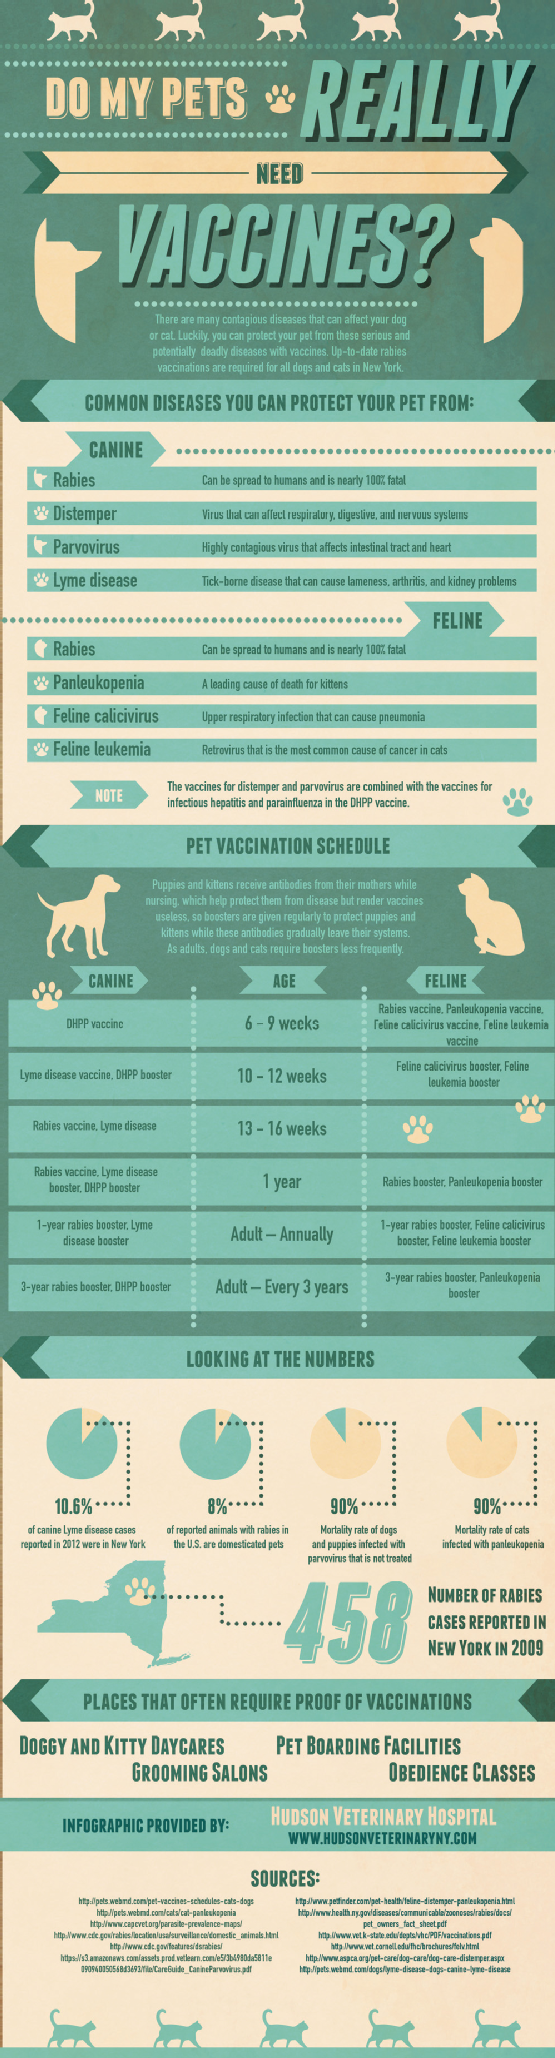 Do My Pets Really Need Vaccines Pet Health Dog Health Vaccines Pet Health Nutrition Pinterest Infographic Pet Health And Cat